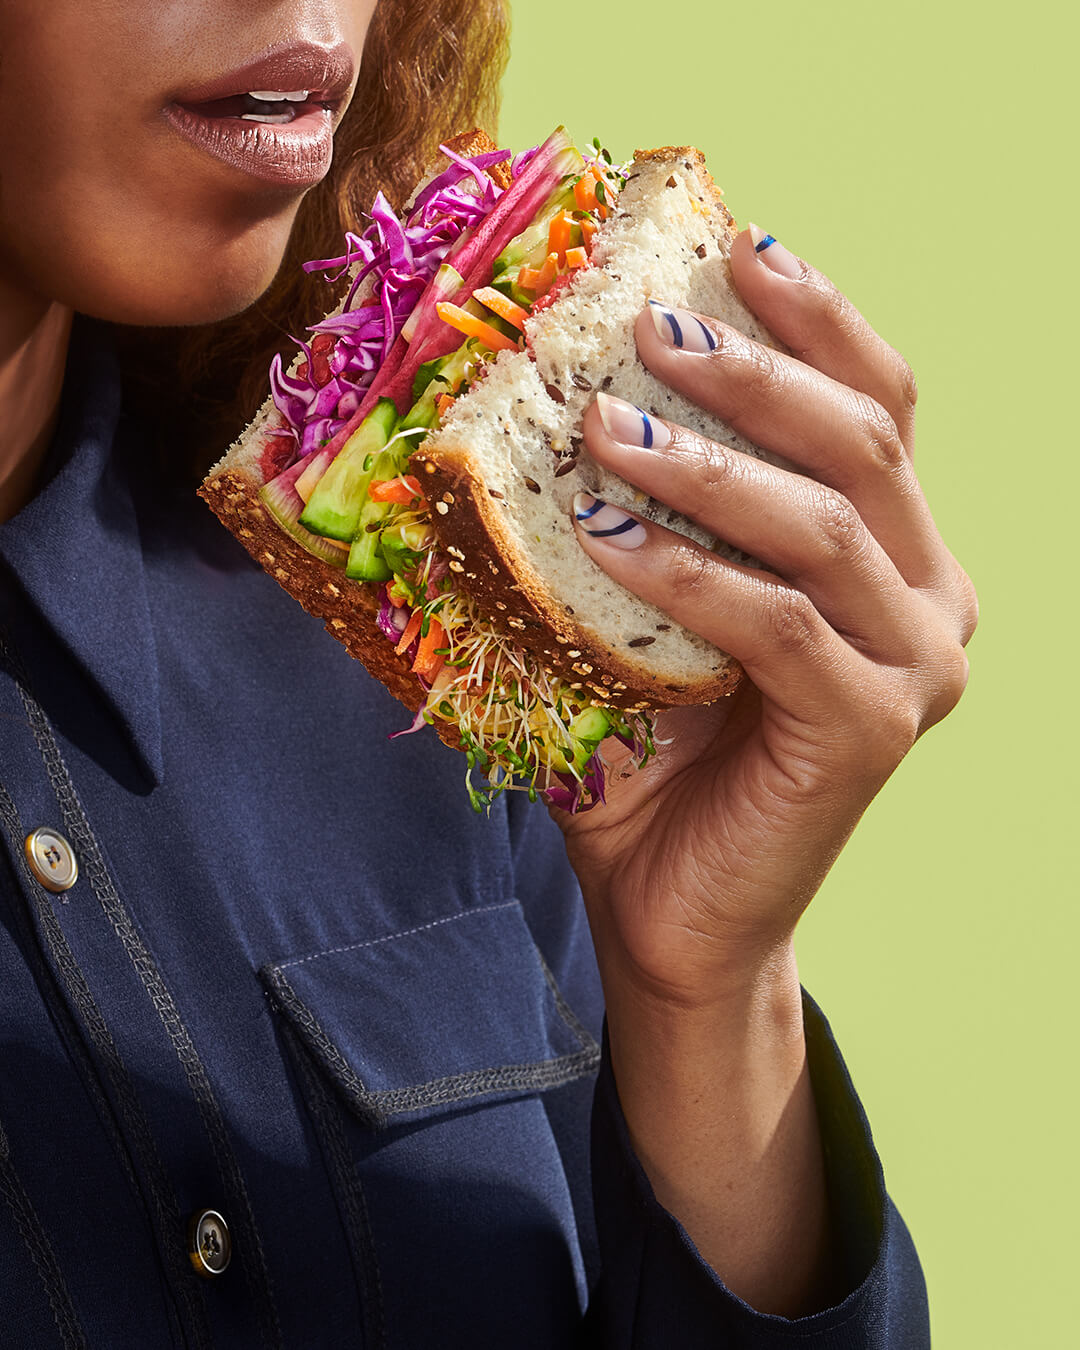 credits: photo- jenna gang, food styling- jen beauchesne, clothing- ross mcCallum, nail design- Ada Yeung, nail tech- michelle sun.  description: conceptual still life of model eating a veggie sandwich.